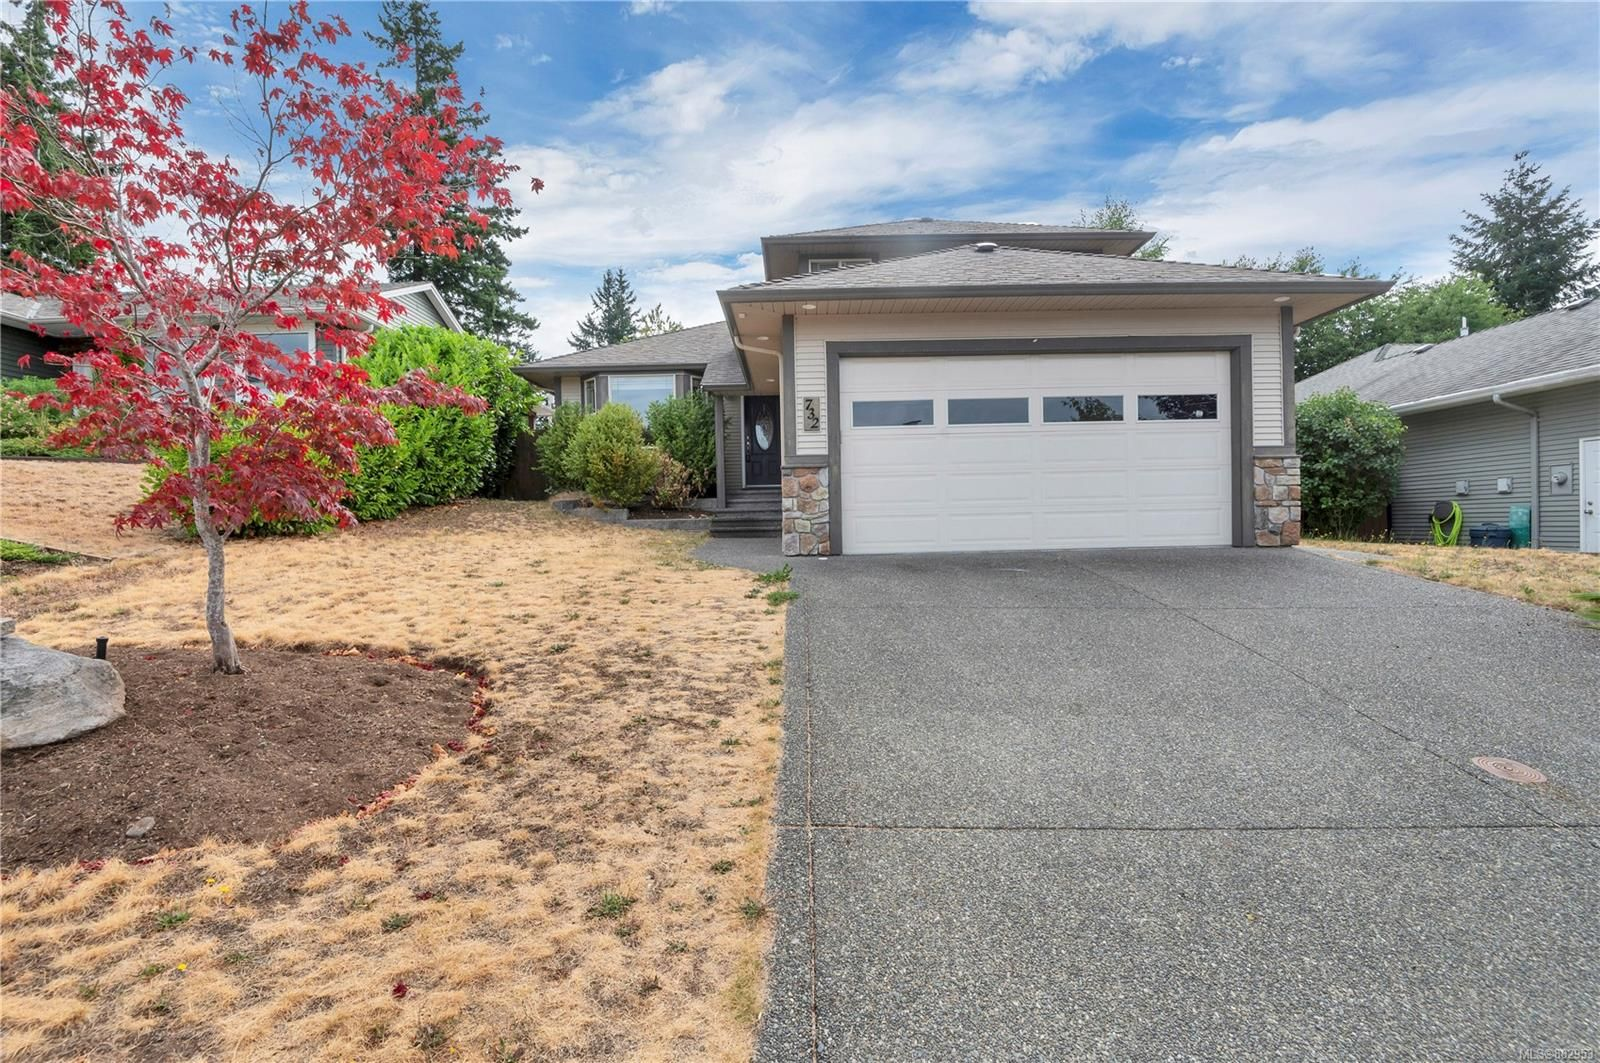 Photo 2: Photos: 732 Oribi Dr in : CR Campbell River Central House for sale (Campbell River)  : MLS®# 882953